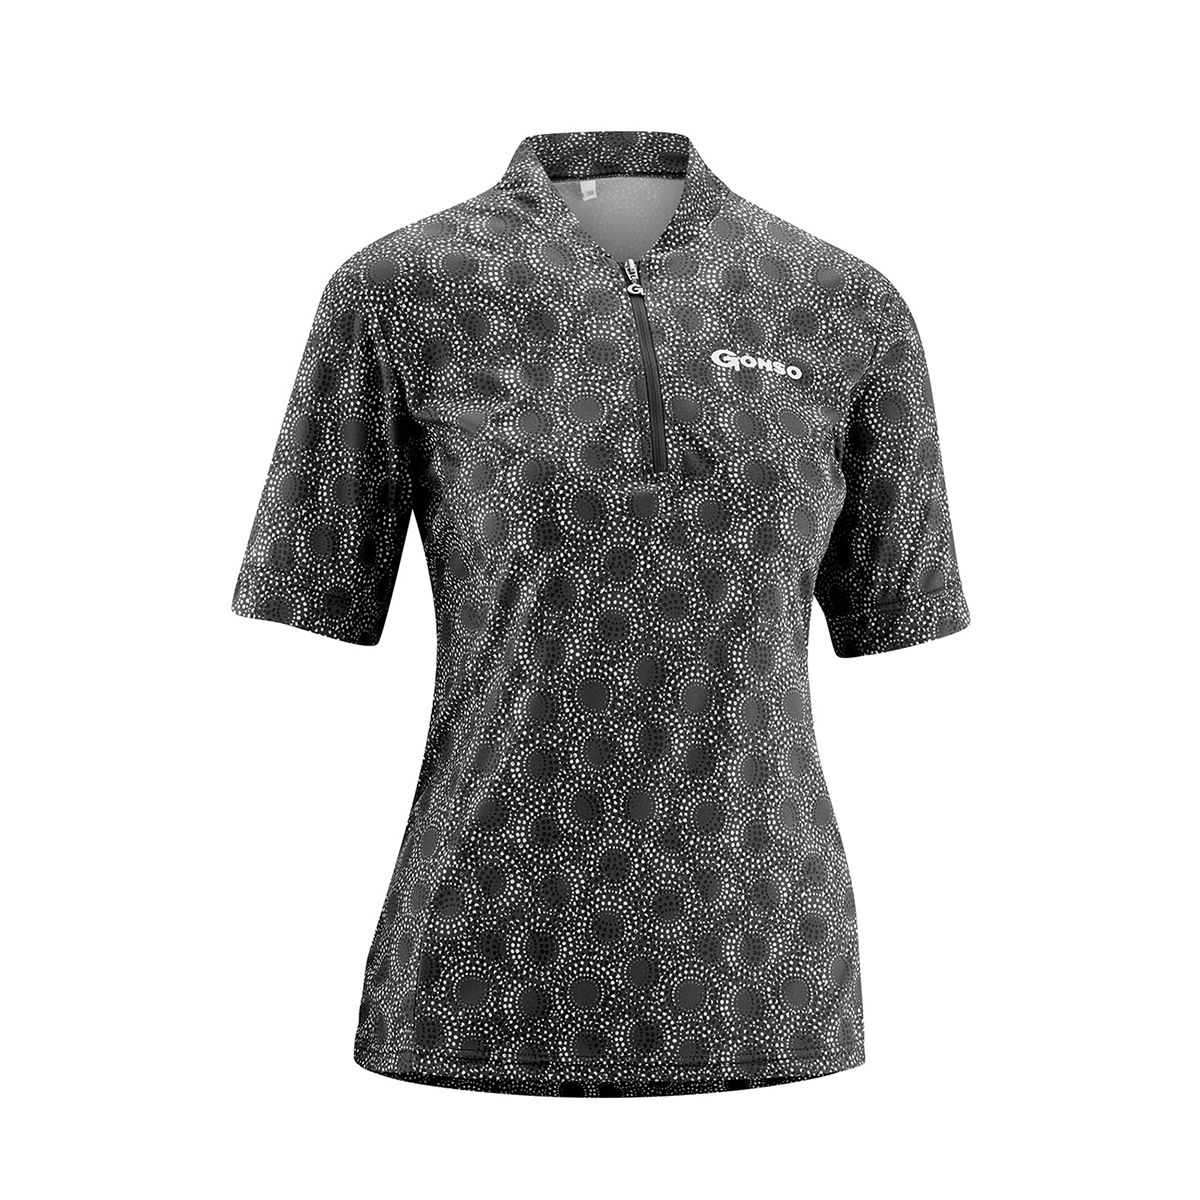 AMPA Women's Cycling Shirt